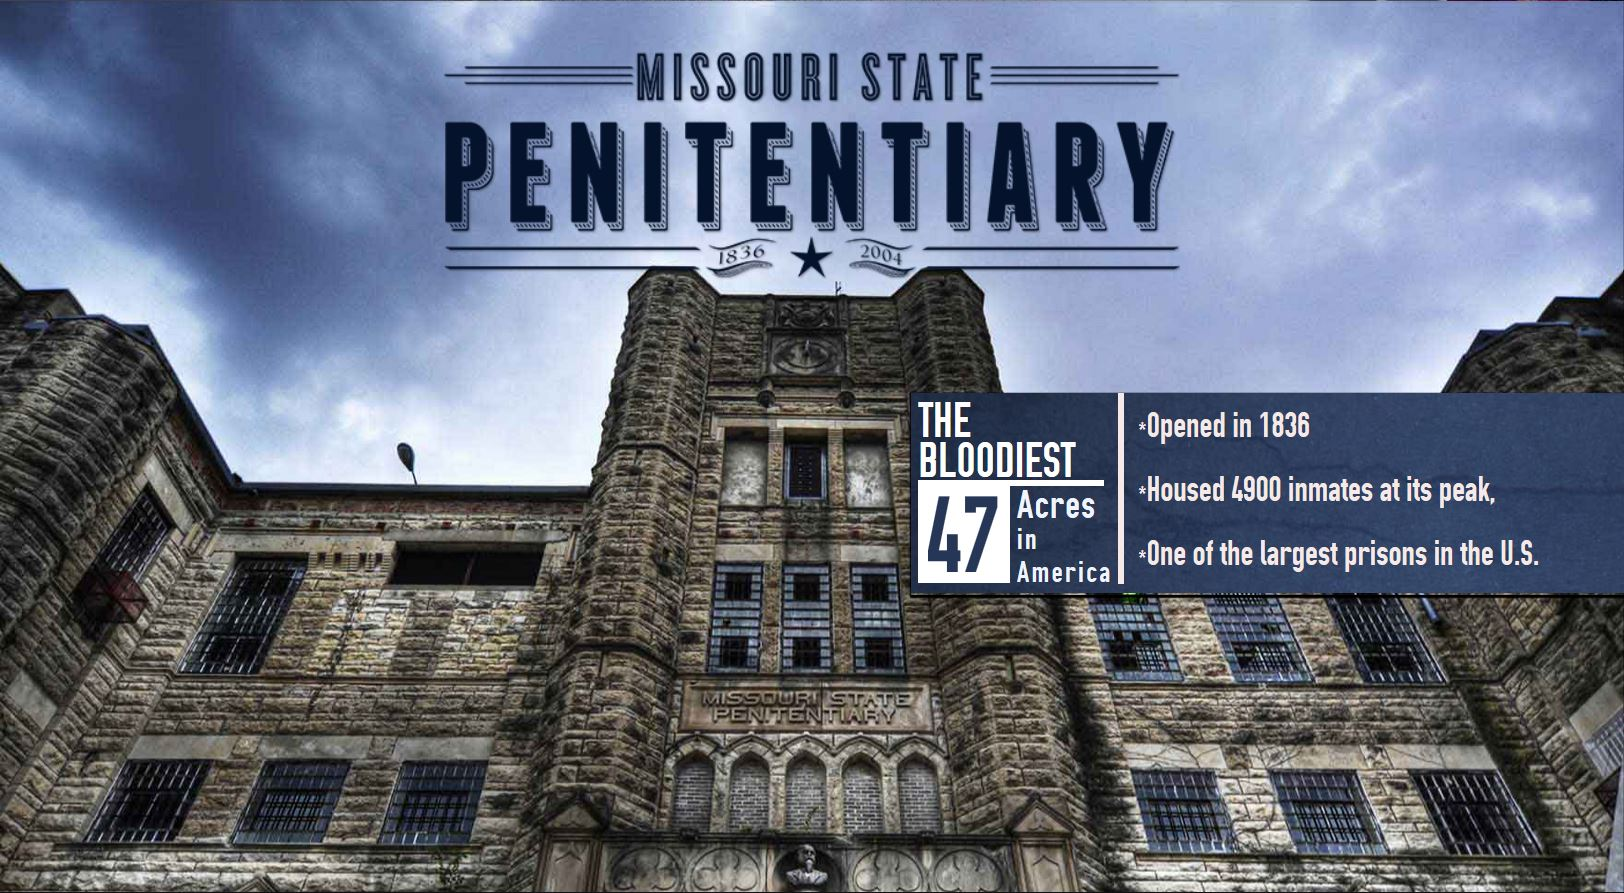 Visit the Missouri State Penitentiary website for more details!